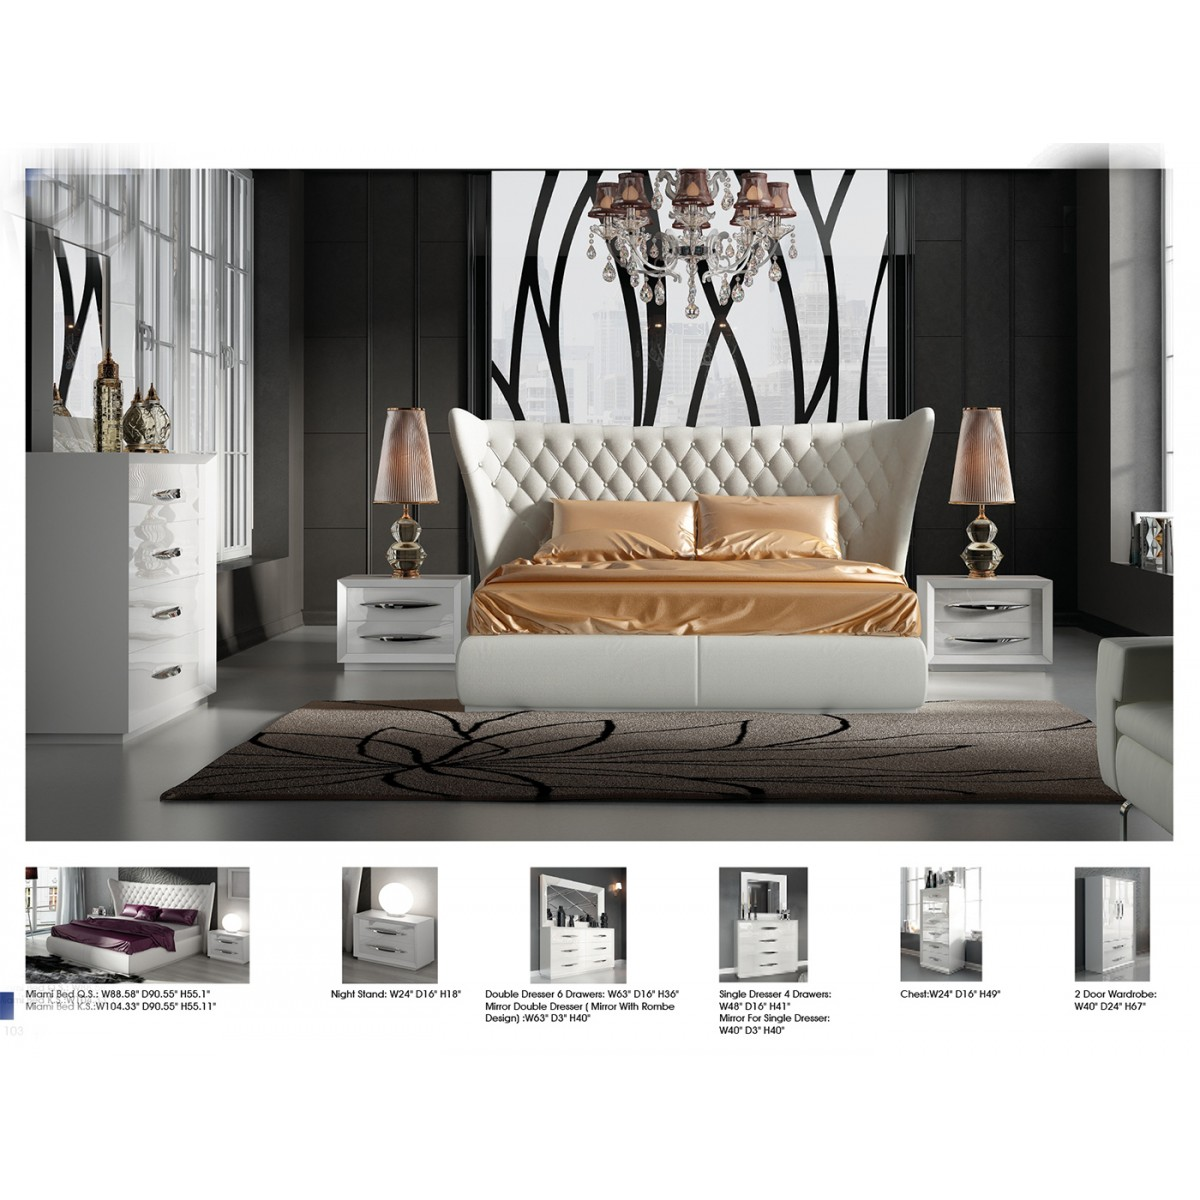 Modern Furniture Miami contemporary & luxury furniture; living room, bedroom,la furniture